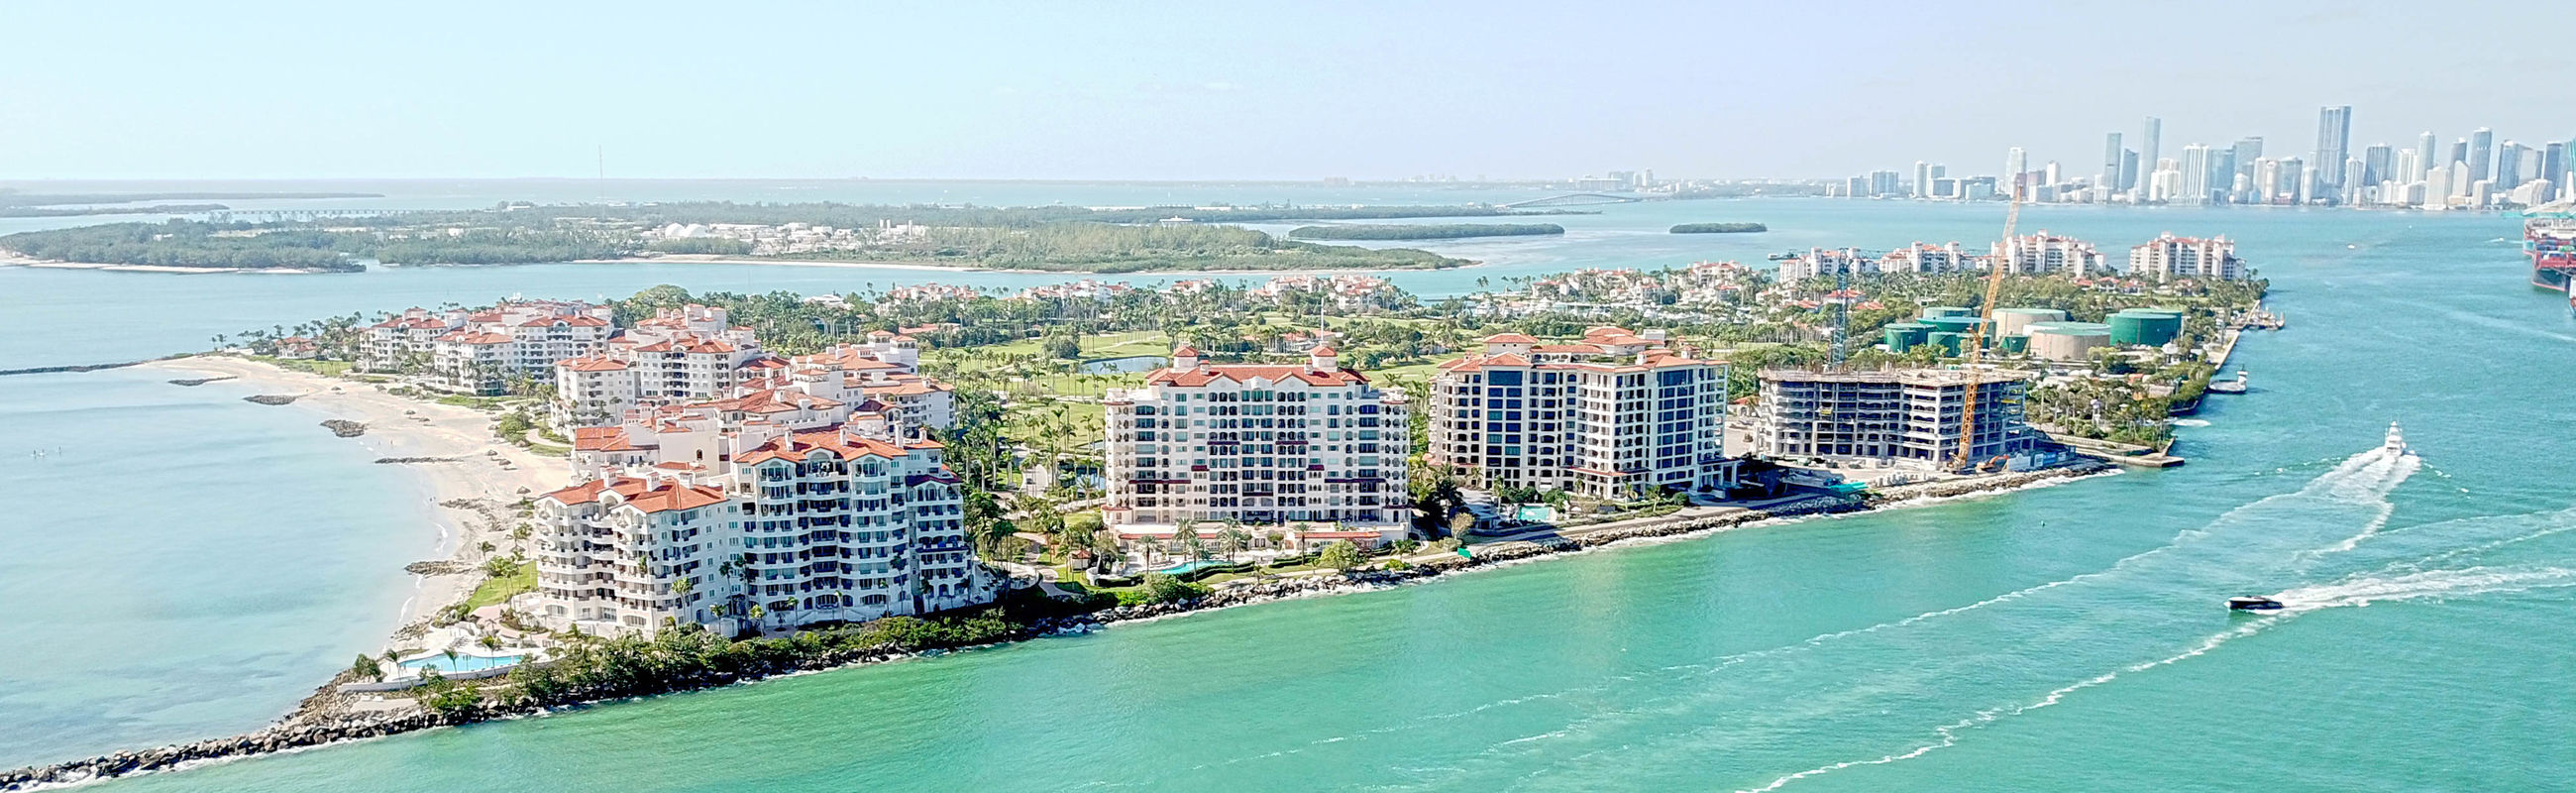 water, building exterior, architecture, sea, built structure, city, sky, building, nature, waterfront, day, high angle view, transportation, cityscape, beach, no people, nautical vessel, travel destinations, office building exterior, skyscraper, outdoors